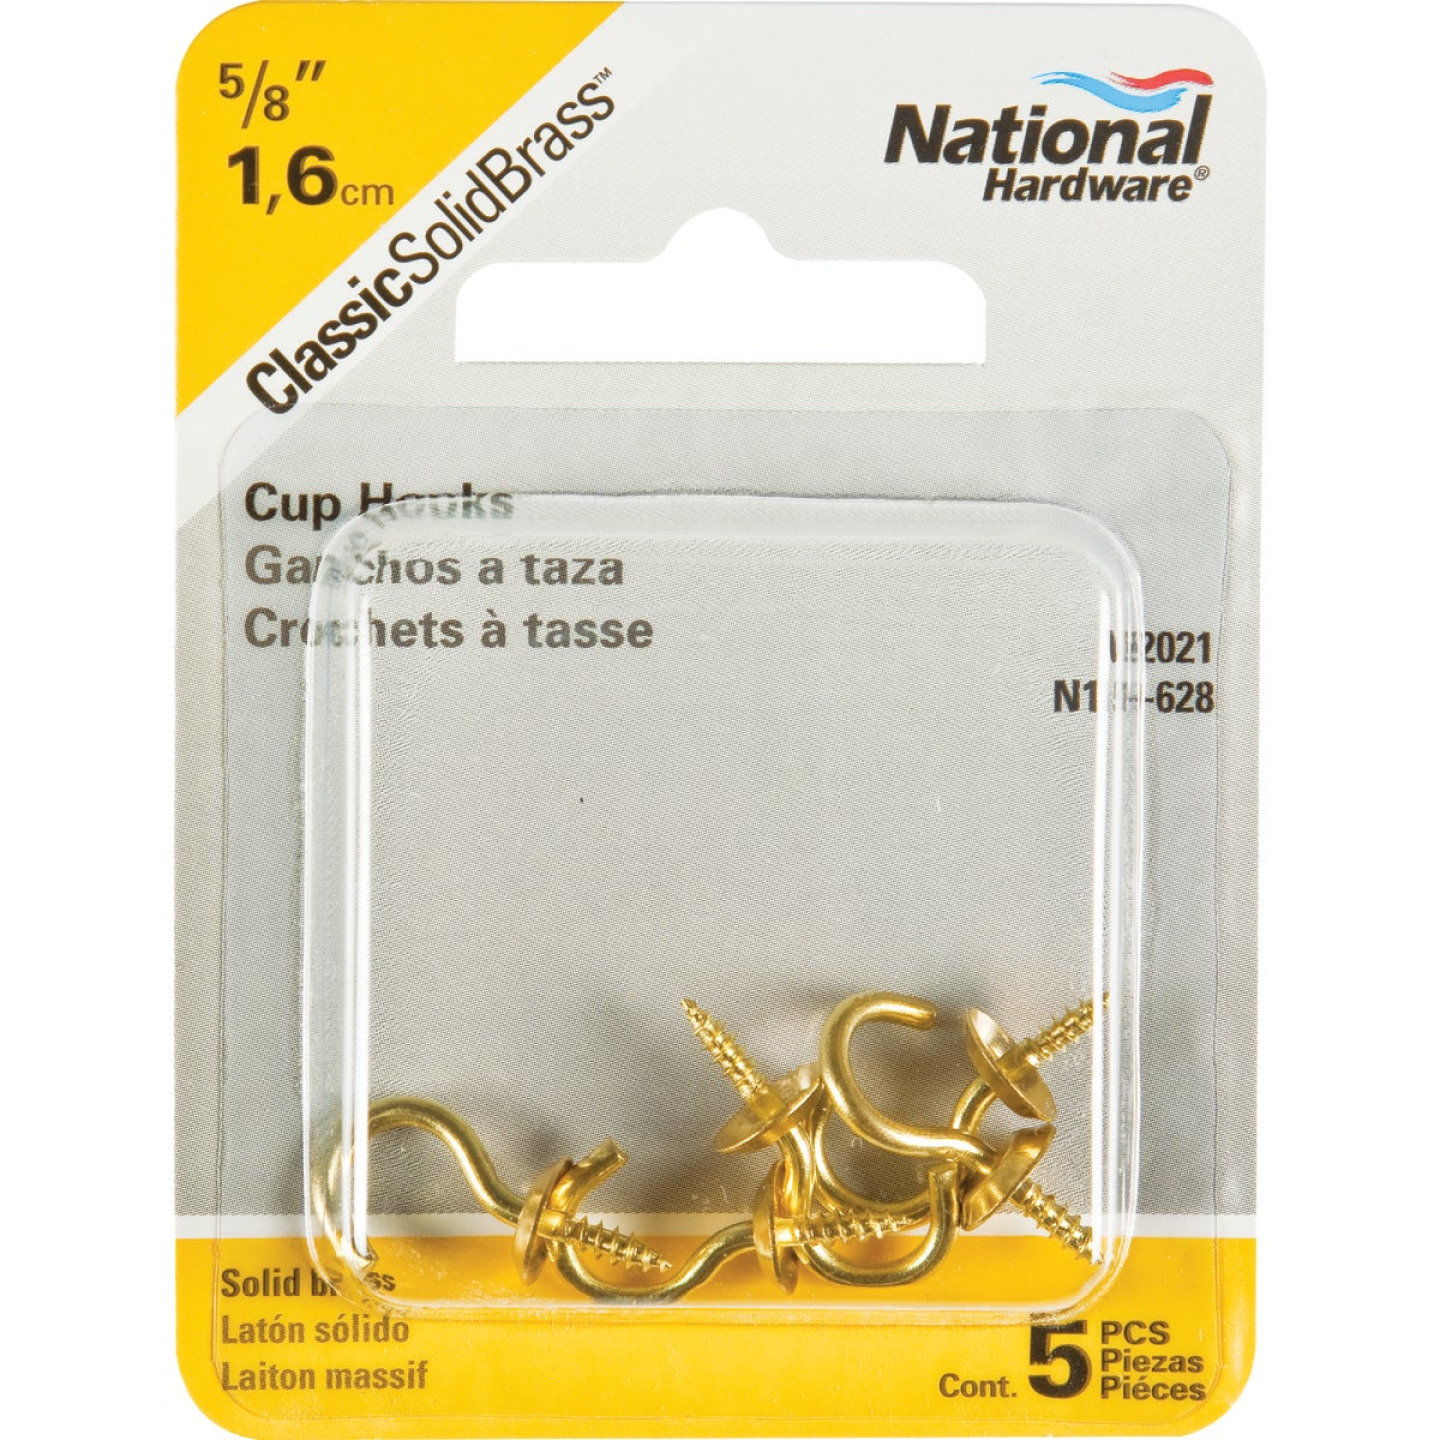 National V2021 5/8 In. Solid Brass Series Cup Hook (5 Count) Image 2